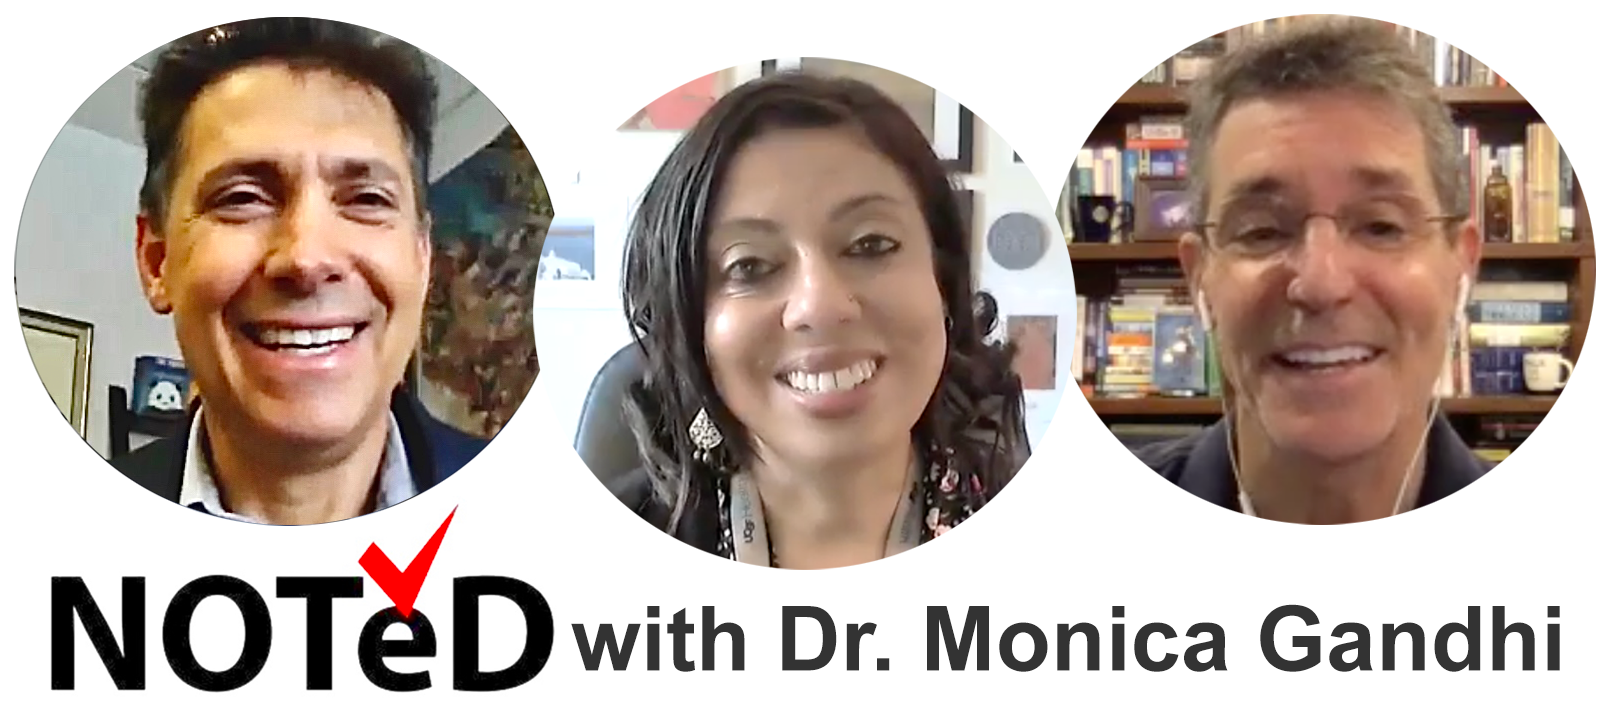 """Monica Gandhi NOTeD on the Covid Vaccine: Dr. Tom Rifai headshot on the left, Dr. Monica Gandhi headshot in the middle, Dr. David Katz headshot on the right. Title below says """"NOTeD with Dr. Monica Gandhi."""""""